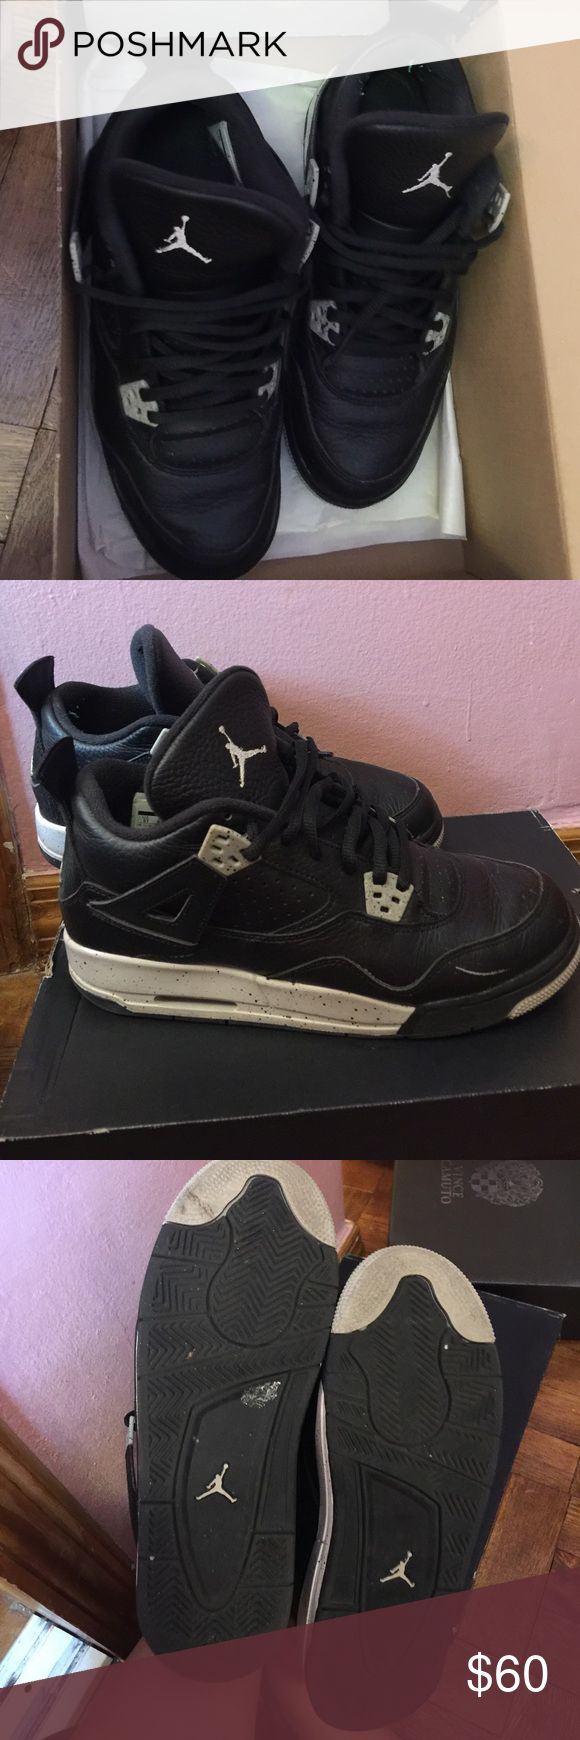 """Air Jordan Retro 4 """"Oreo"""" Air Jordan Retro 4 """"Oreo"""" black and gray original box! Size 6Y in boys- 7.5 in women. Flexible on offer price! 🖤 Jordan Shoes Sneakers"""